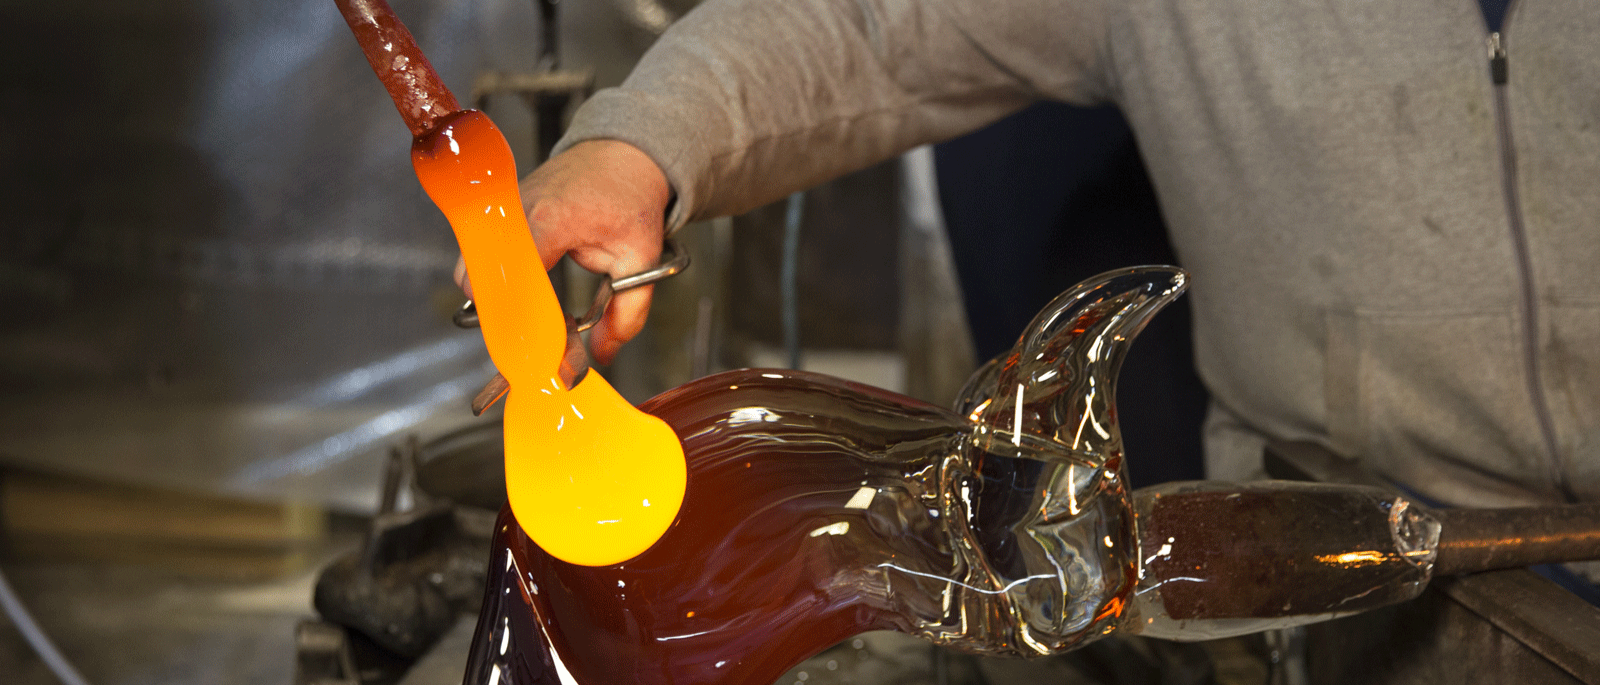 """Oscar Zanetti was born in Murano in 1961. One of his ancestors, Abbott Zanetti, was the founder of the Museo del Vetro (Museum of Glass) and opened the Scuola del Vetro (Glass School) in the 19th Century. Oscar began working with glass at the age of 14 while attending the local art high school. He started out as an assistant or """"serventino"""" and perfected his technique at some of the most prestigious Murano glass ateliers, including Venini and La Murrina, before joining the family workshop…"""